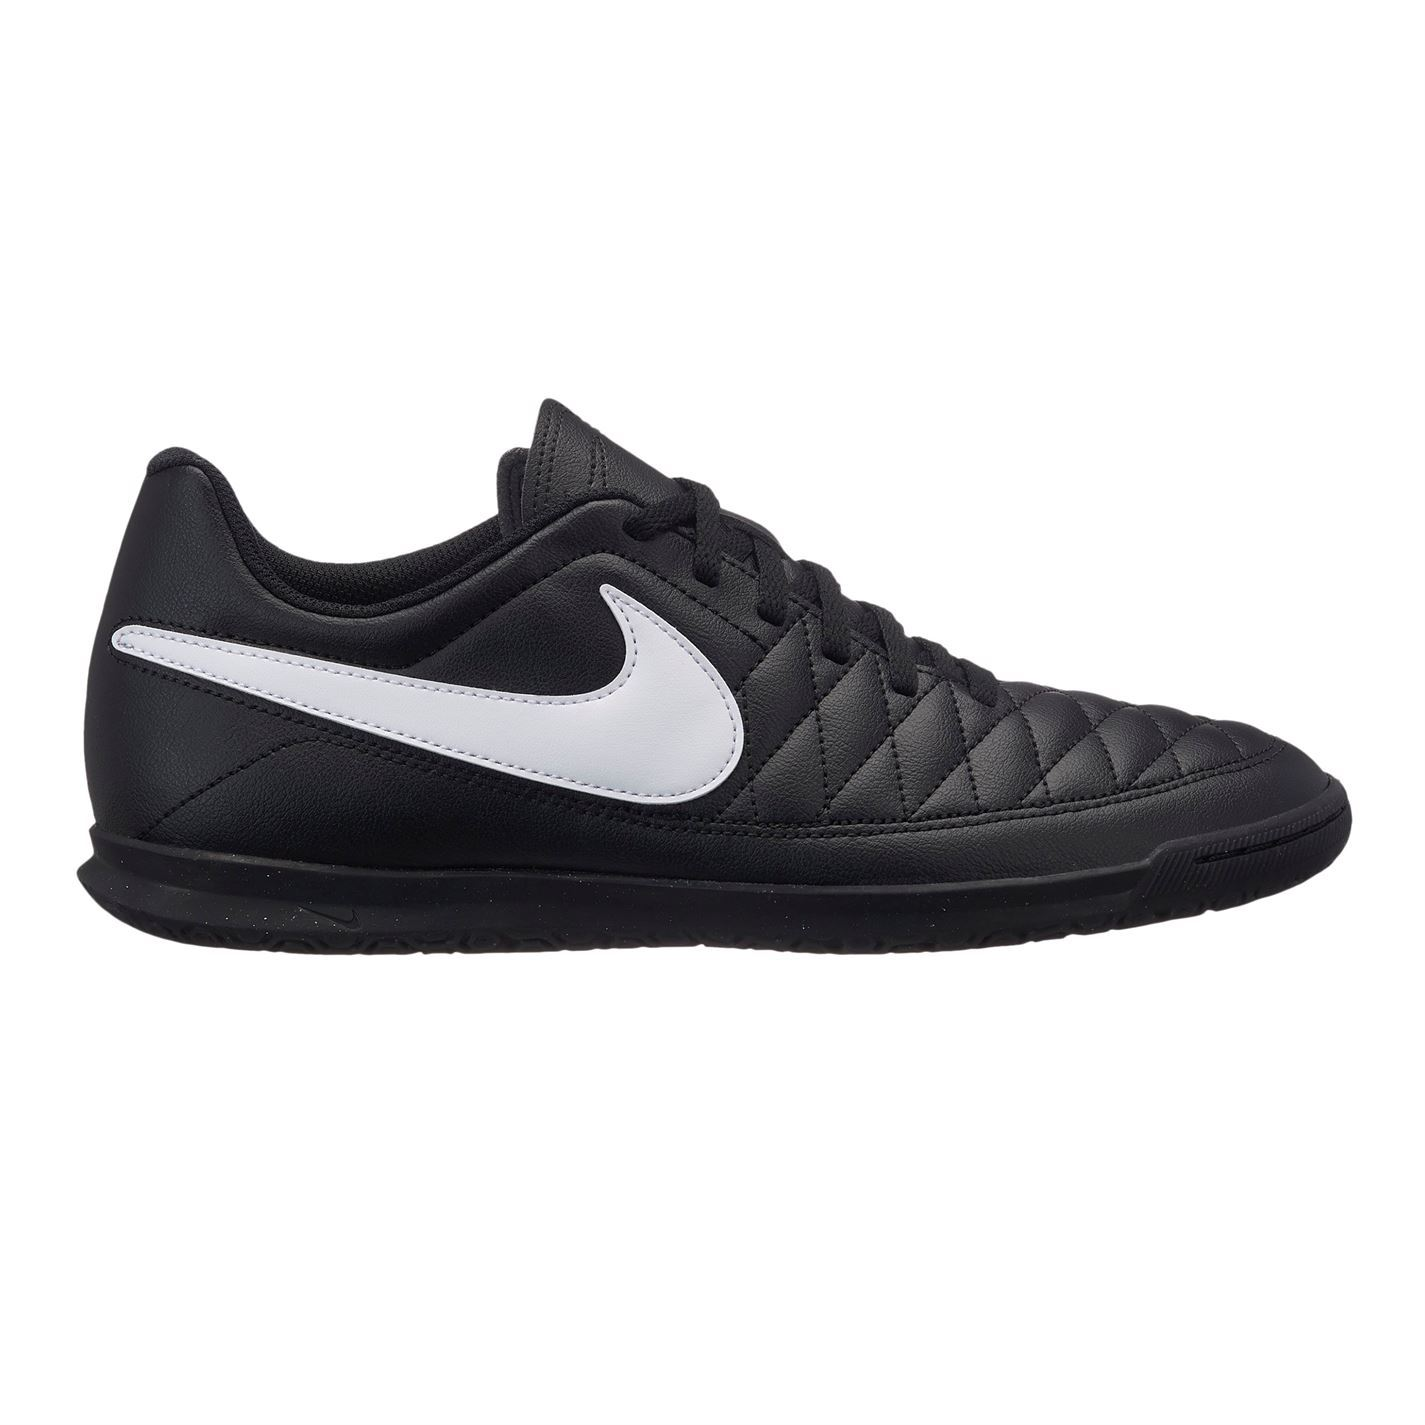 Nike-majestry-Indoor-Football-Baskets-Pour-Homme-Football-Futsal-Chaussures-Baskets-Bottes miniature 15